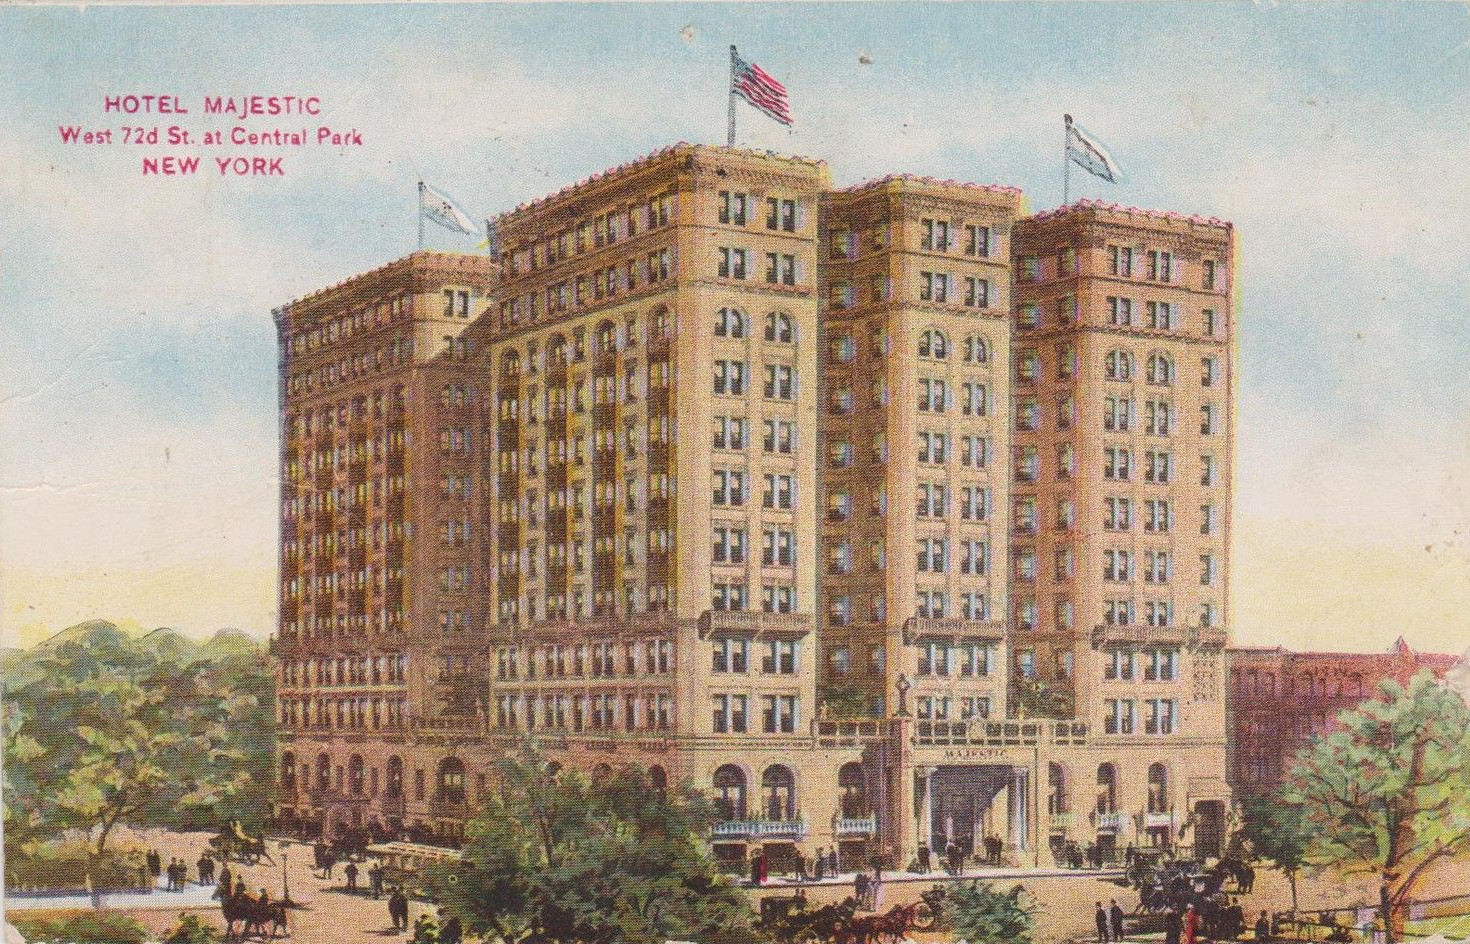 Old New York In Postcards #20 – Hotels Of The Past On The Upper West Side